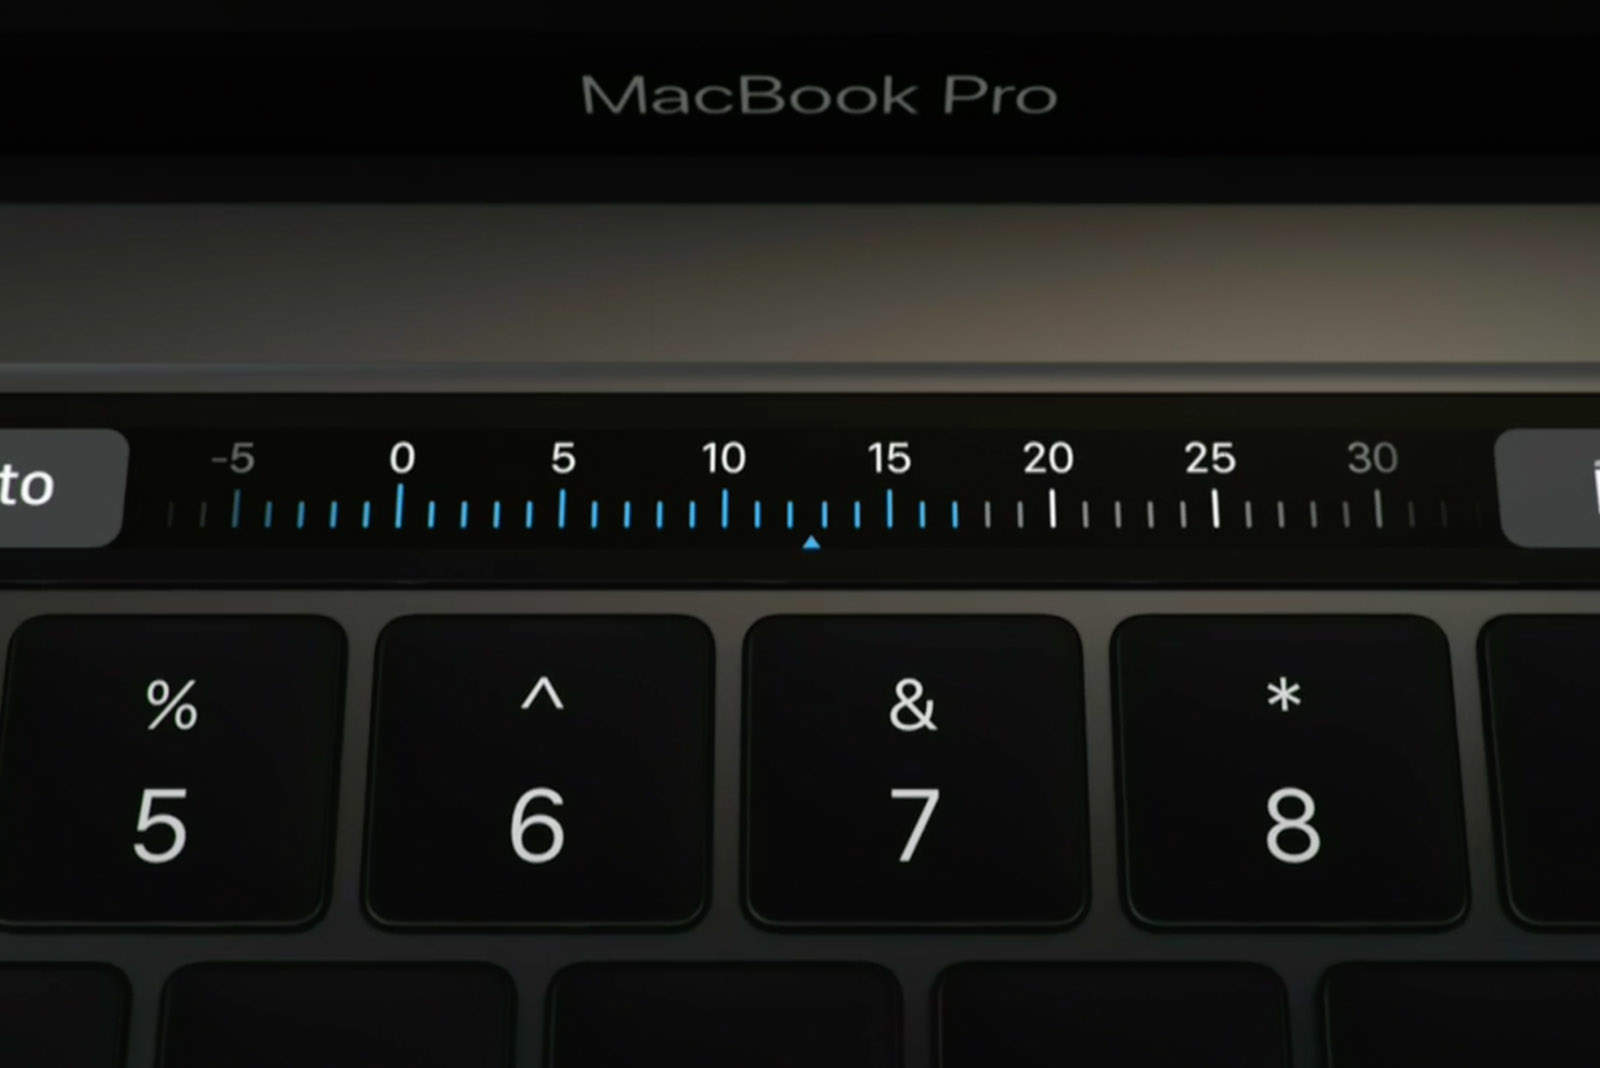 The new MacBook Pro has a bit of iOS inside.